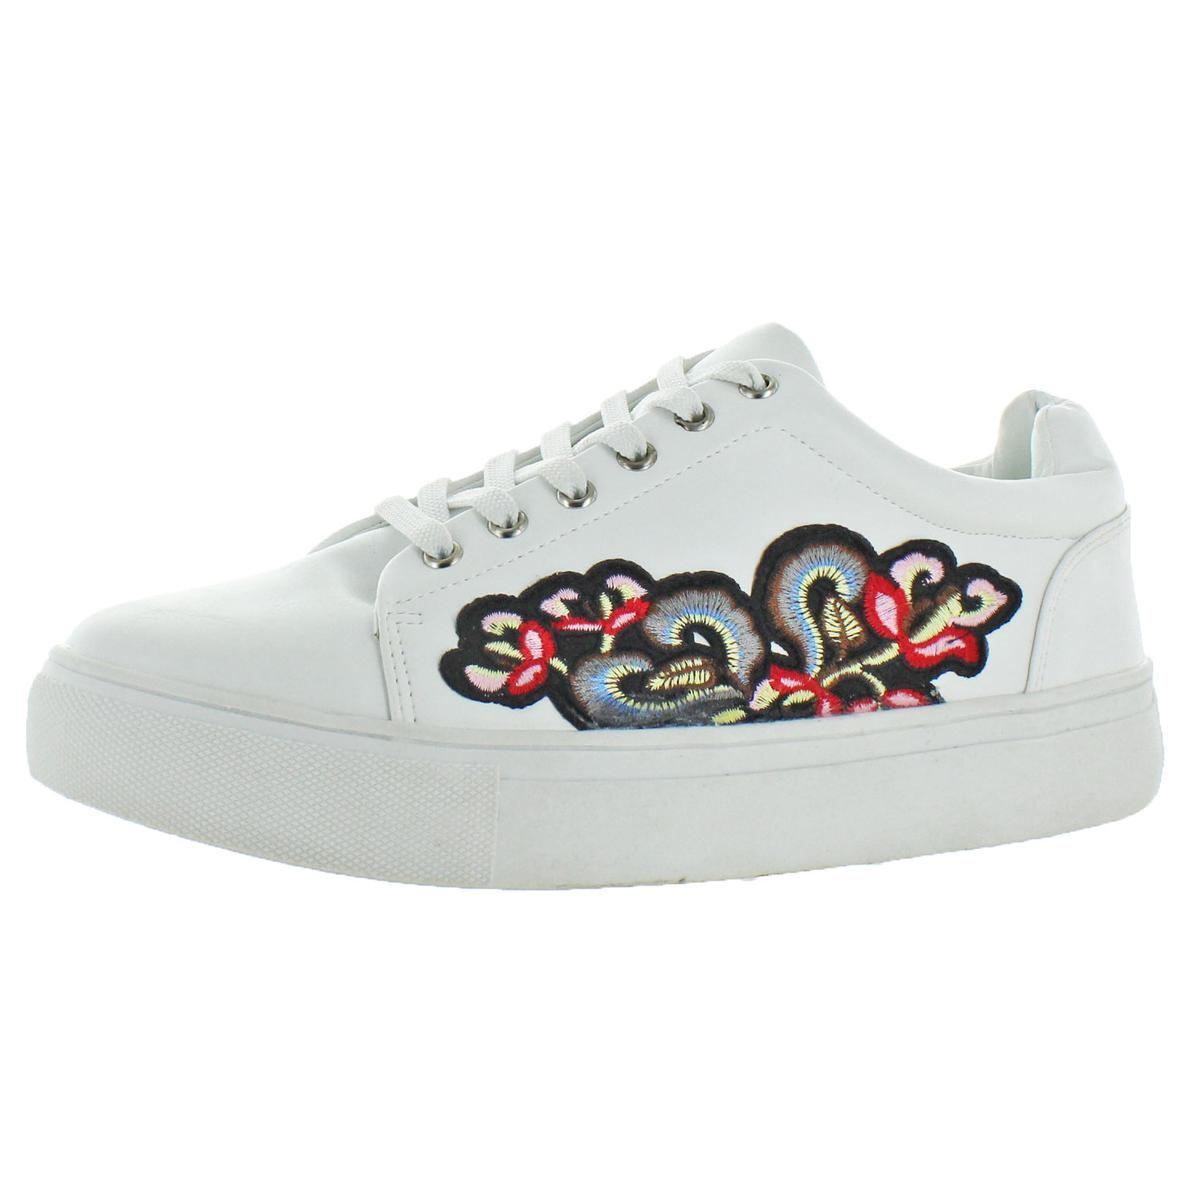 1a6e90ce1fb Steve Madden. White Womens Audrina Ankle-high Padded Insole Fashion Sneakers